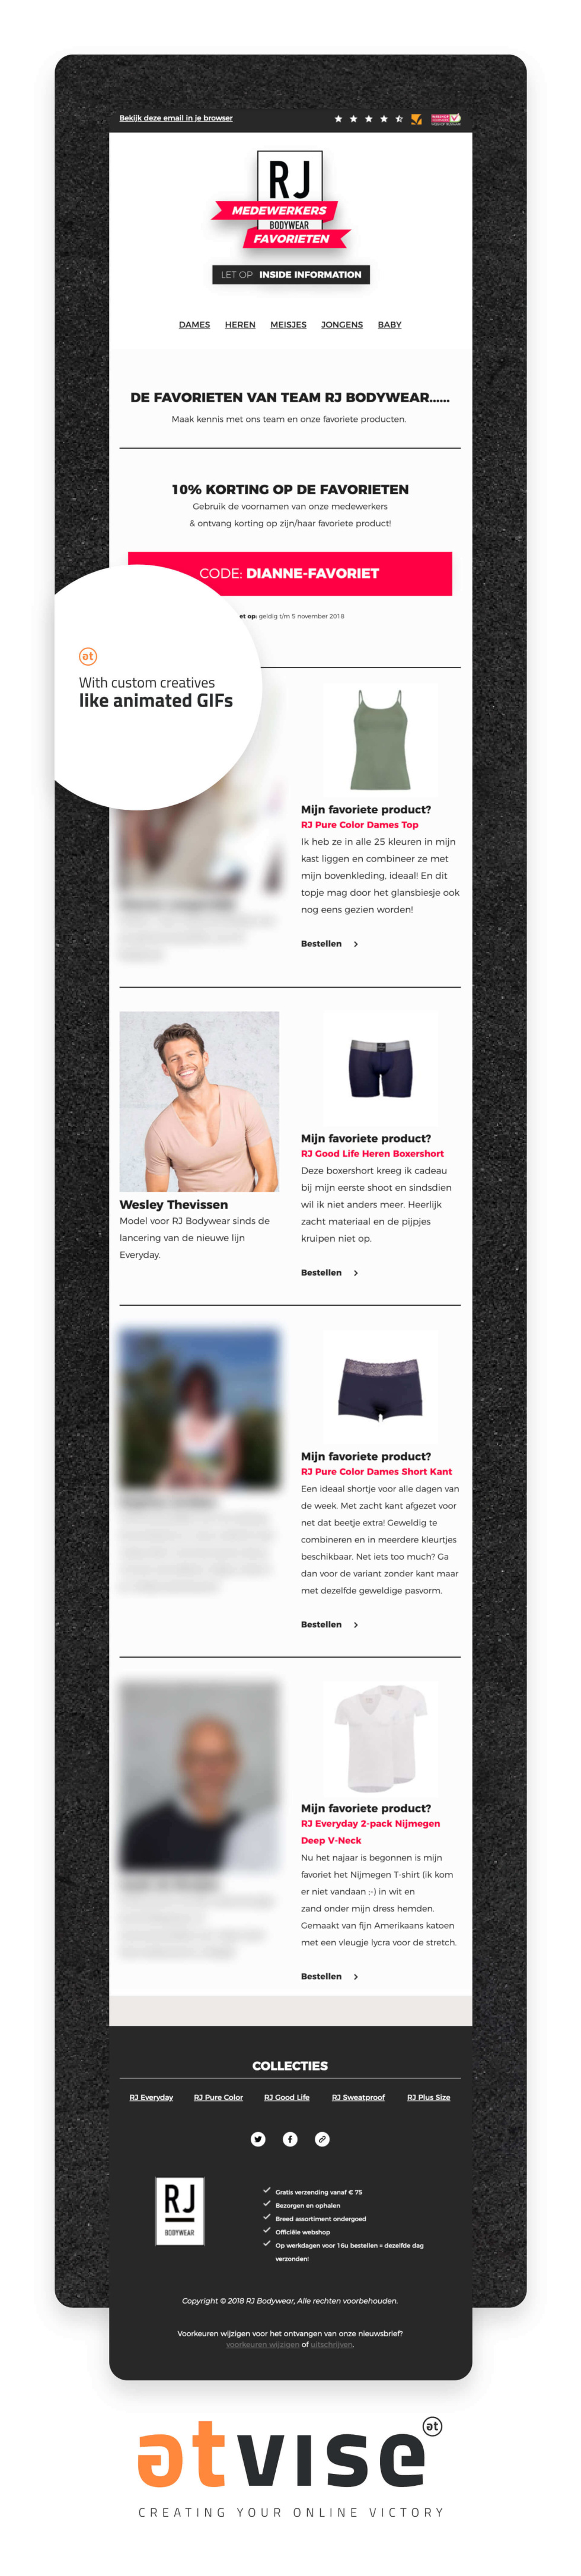 Newsletter template in email featuring clothing products. Images of happy people modeling clothes with supporting text describing products.